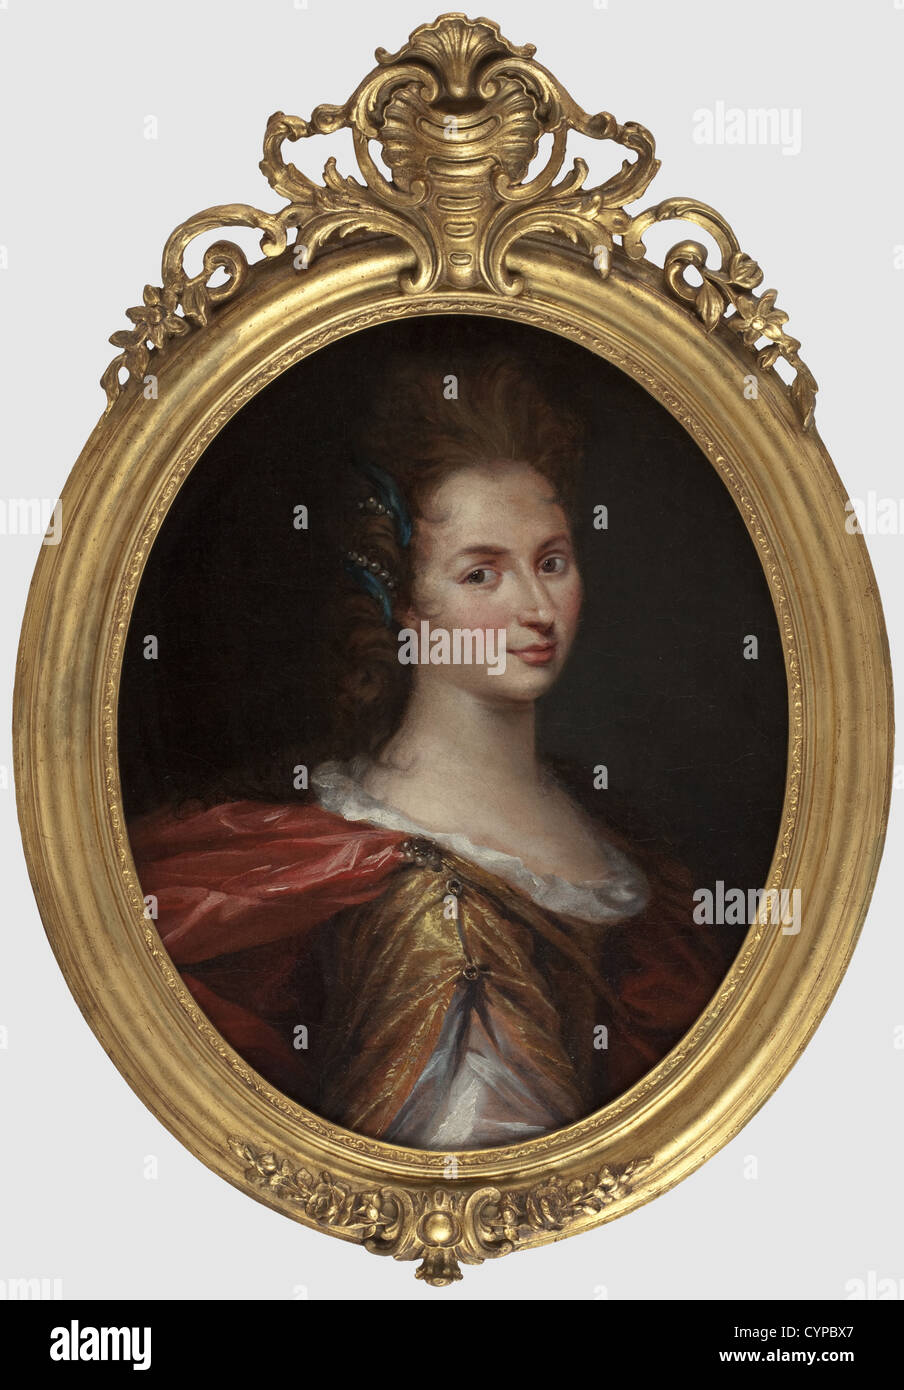 A baroque portrait of a noble lady, probably France, 1st half of the 18th century Oil on canvas (relined), not signed, - Stock Image